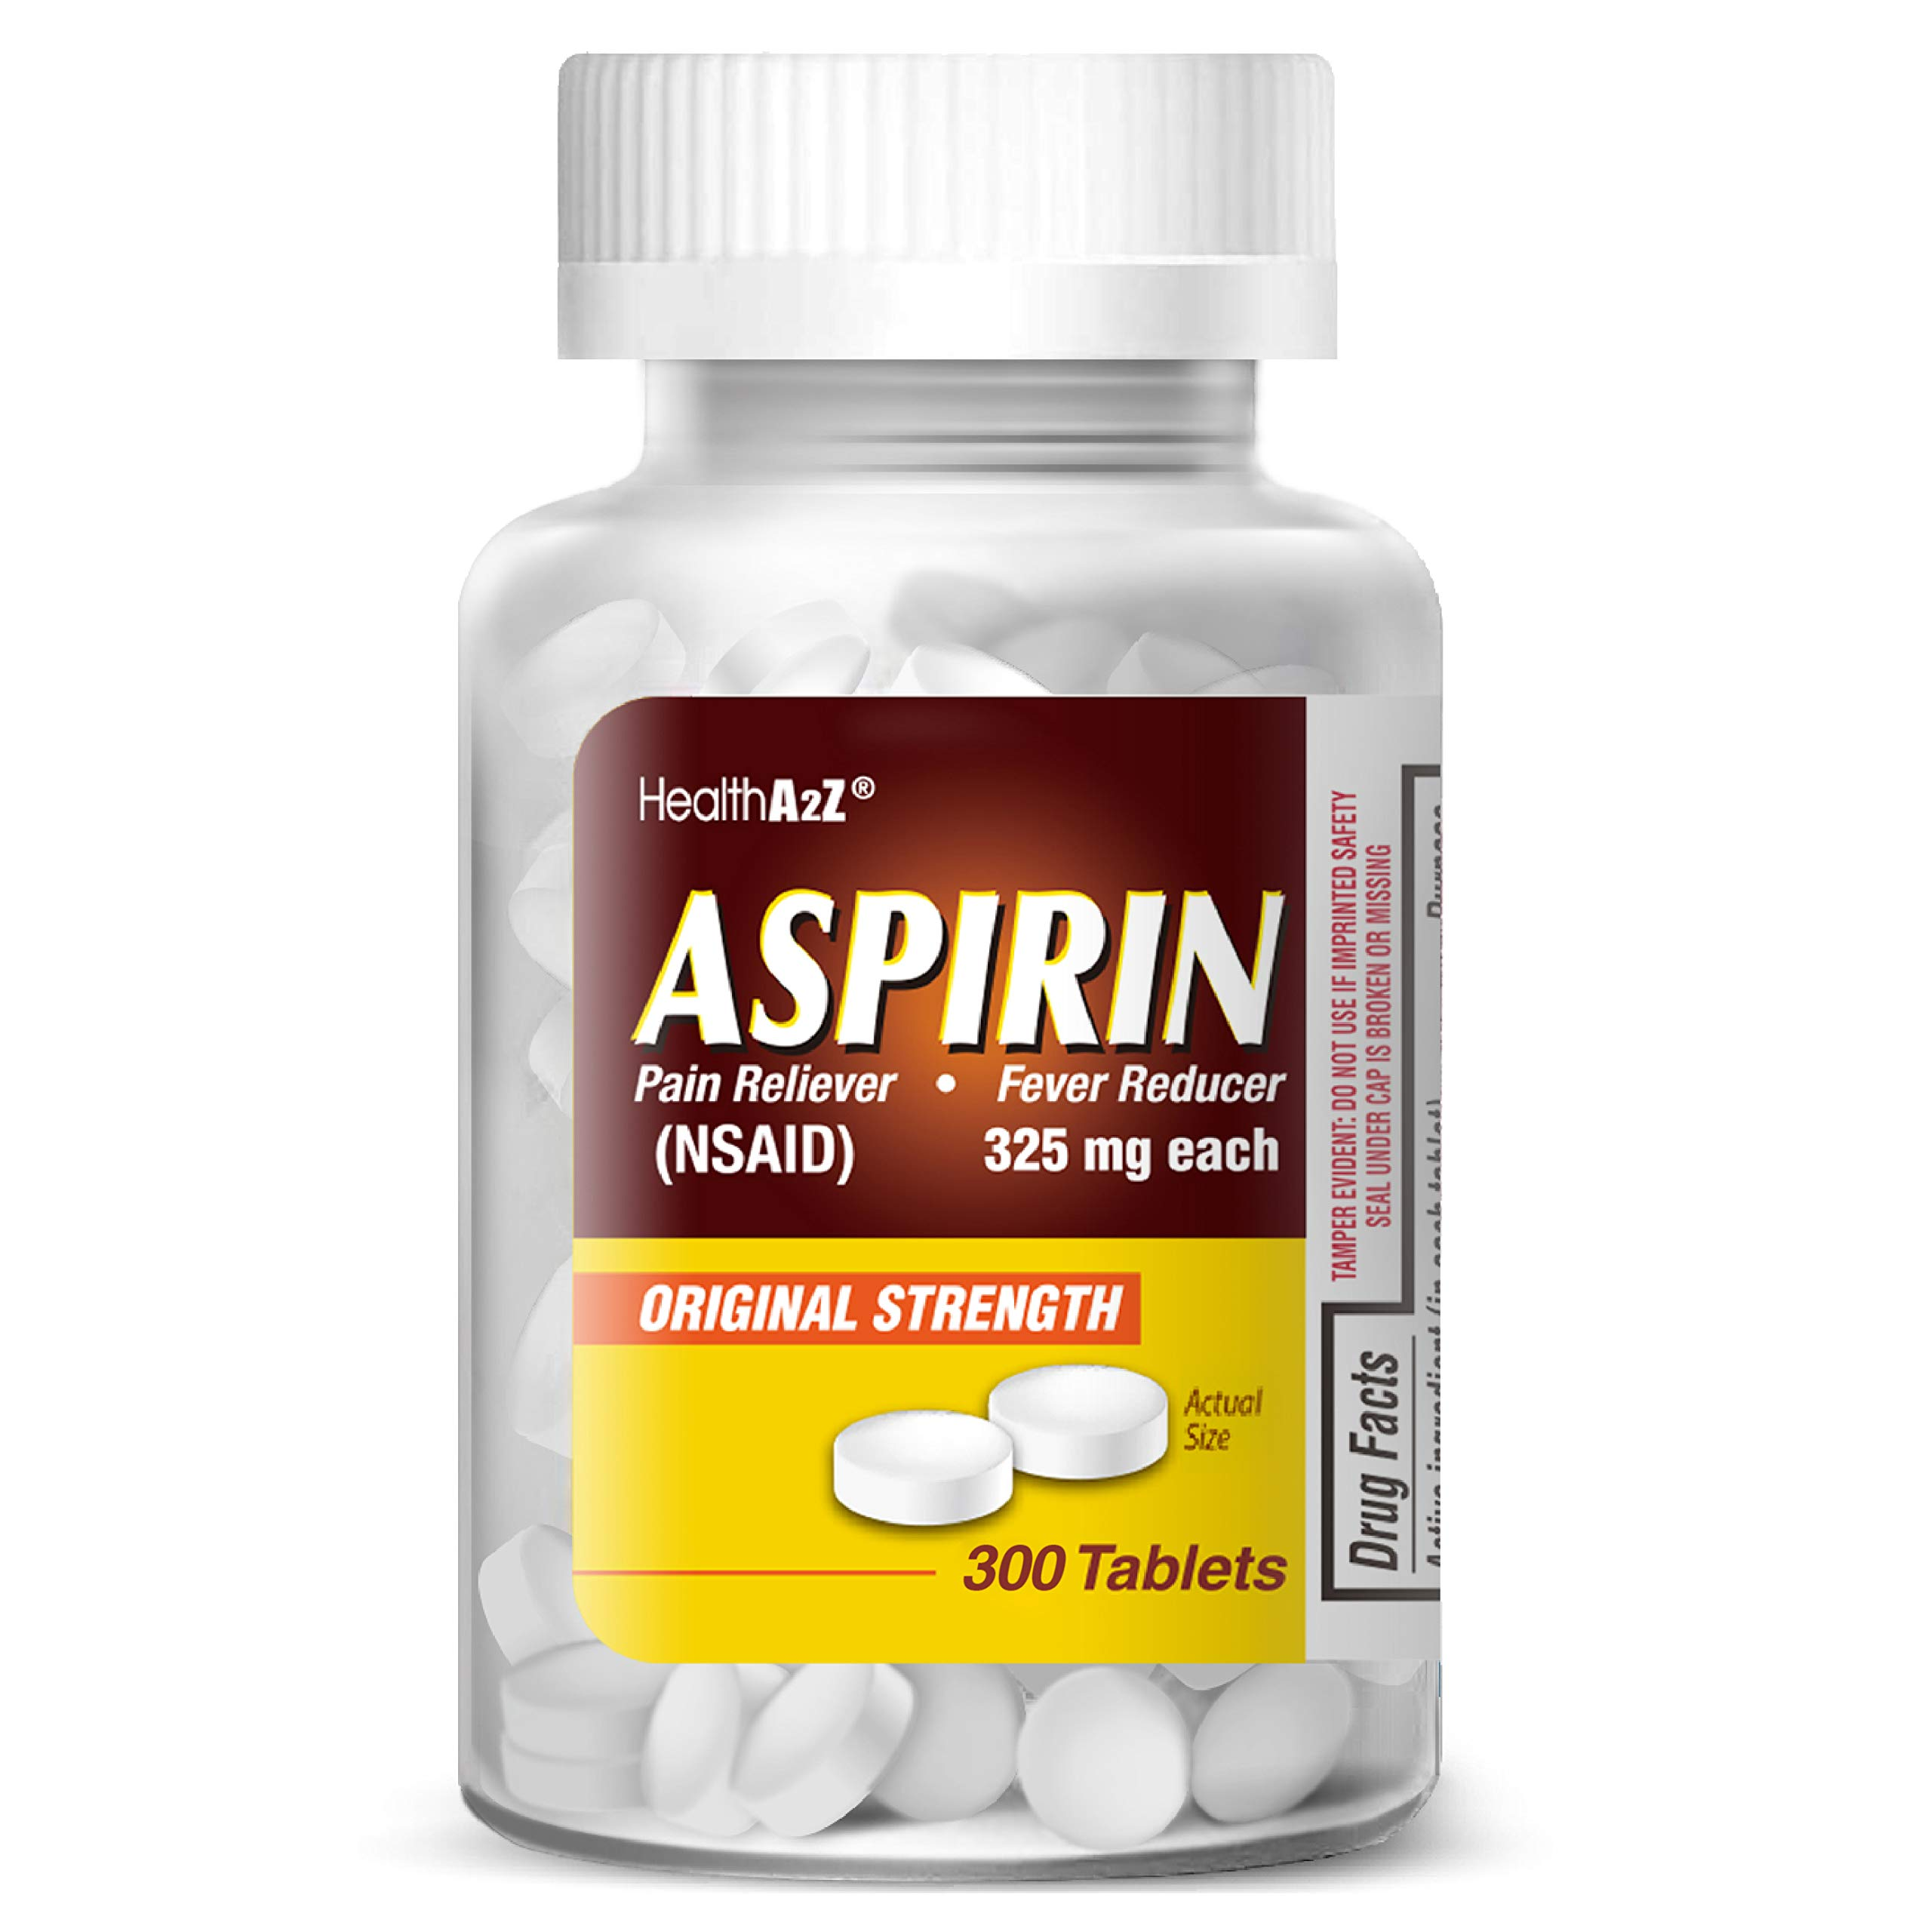 HealthA2Z Aspirin 325mg, 300 Count, Uncoated,Compare to Bayer® Active Ingredients